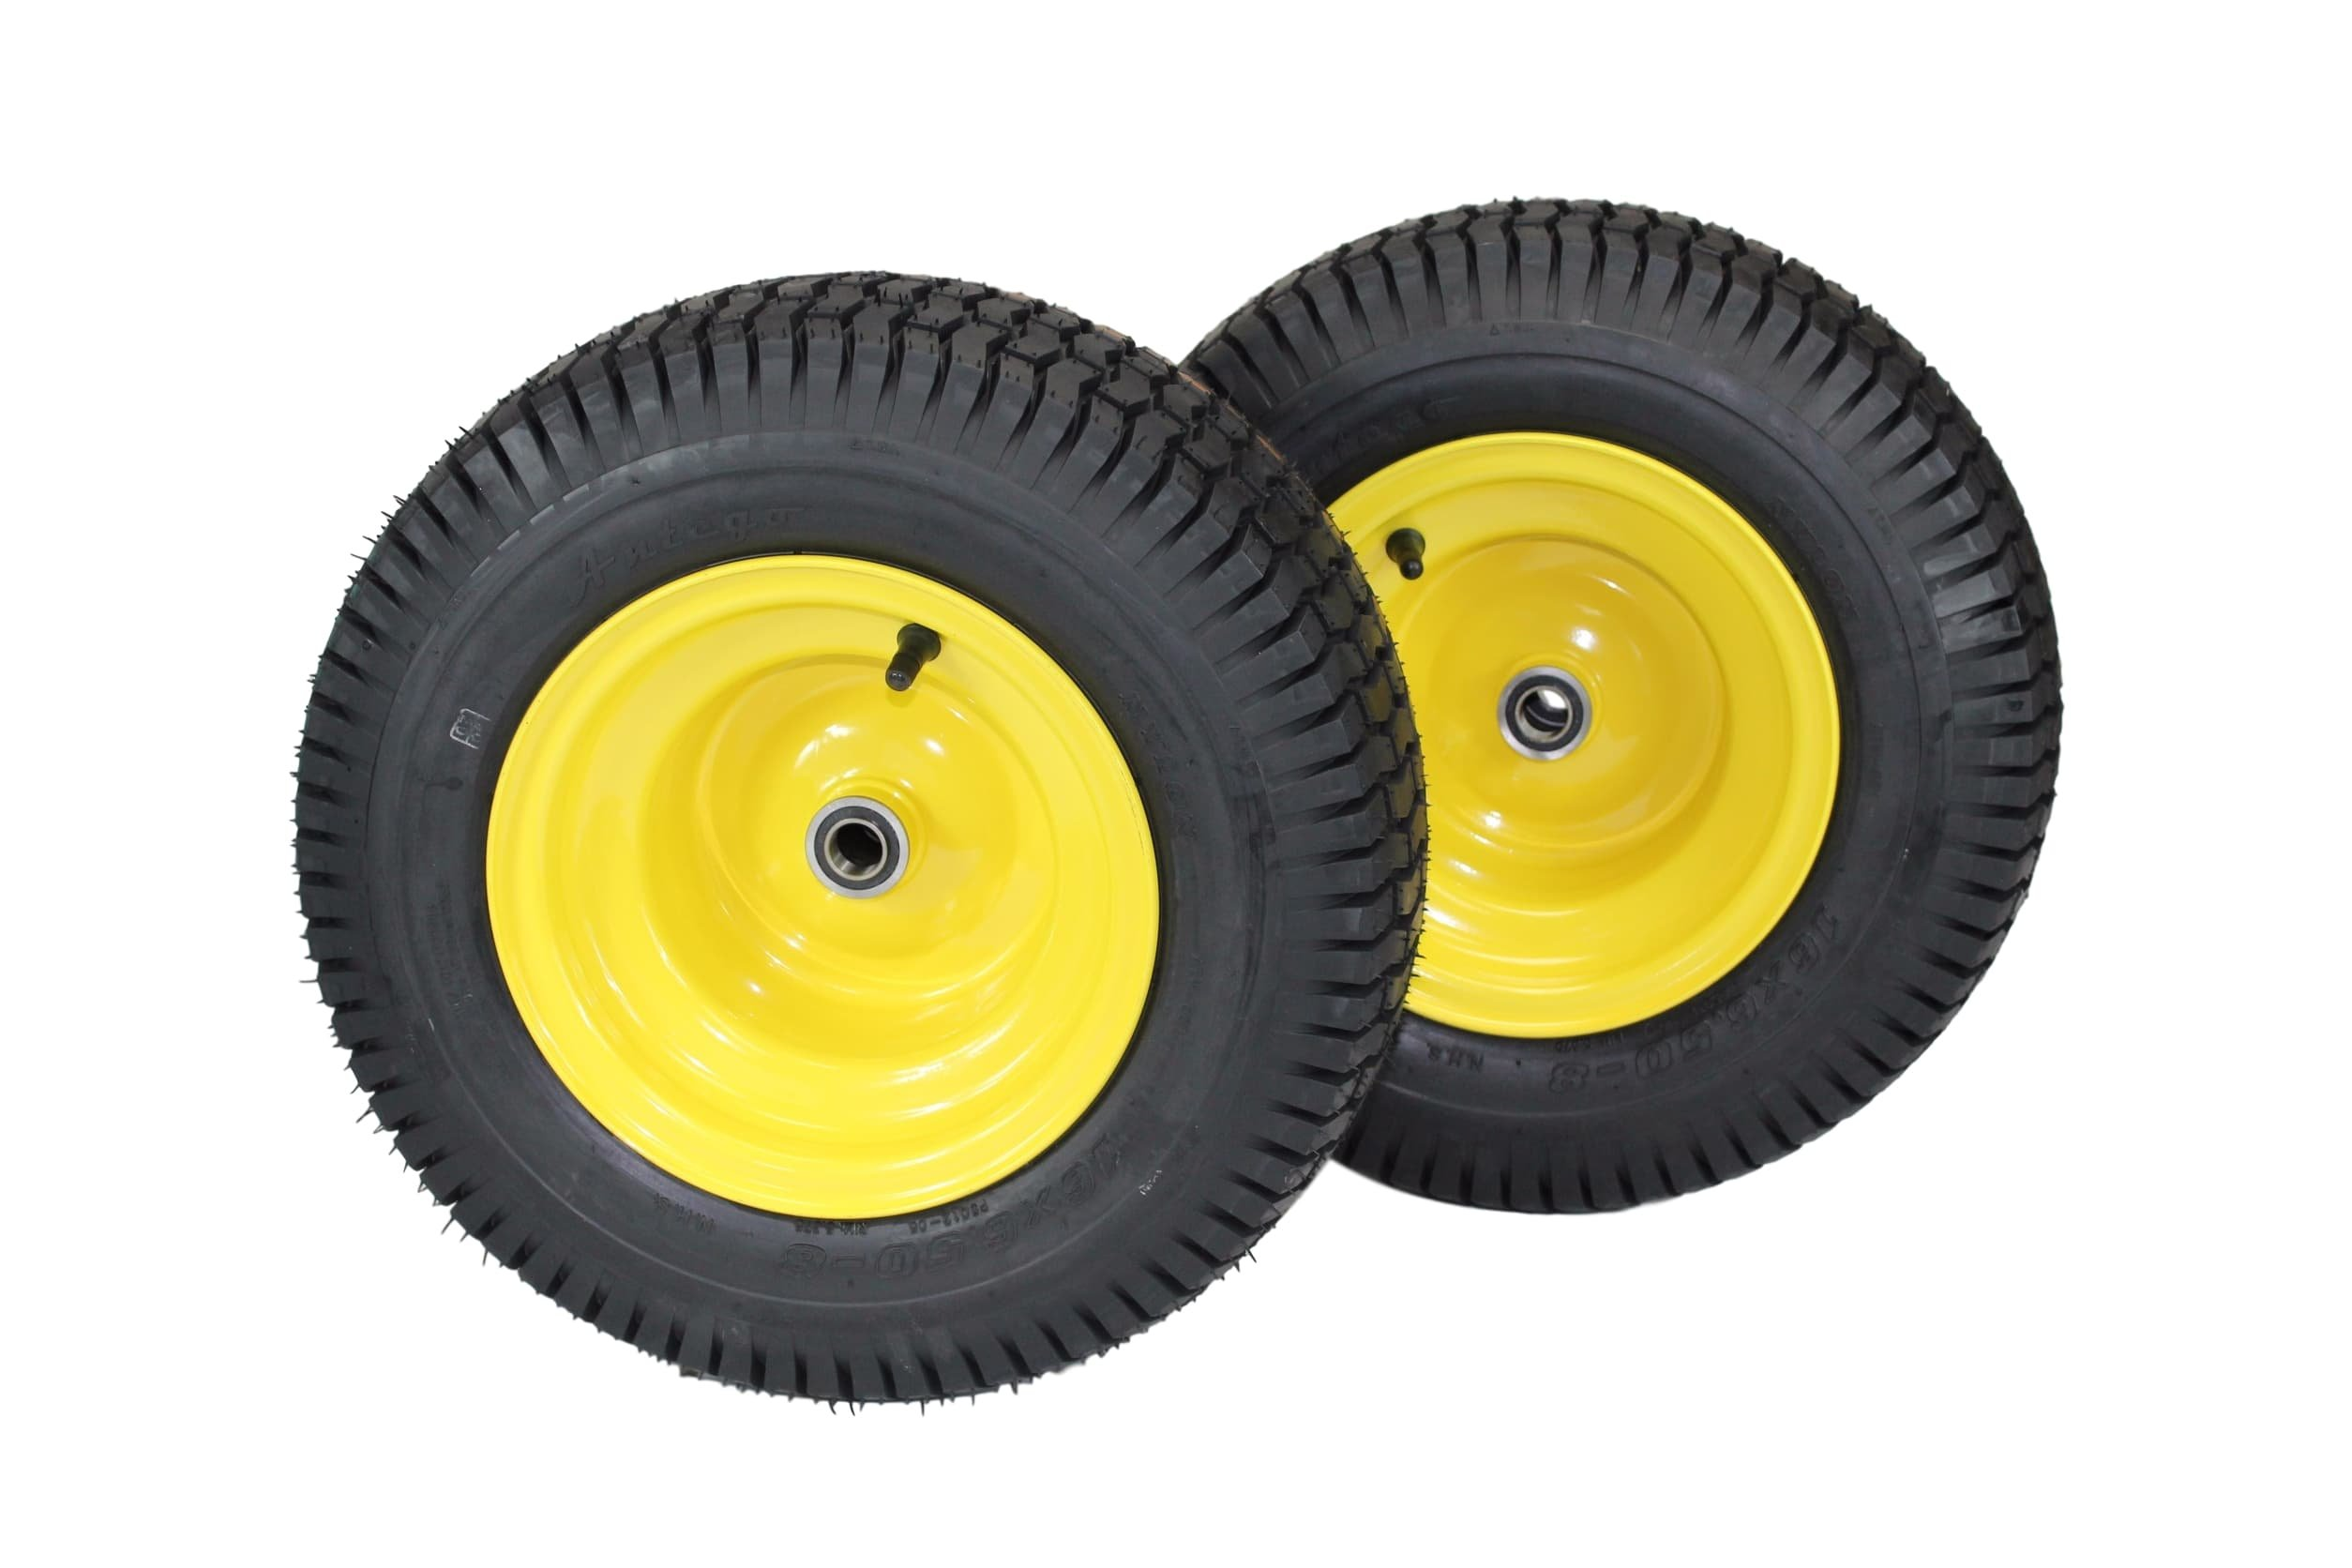 Antego (Set of 2) 16x6.50-8 Tires & Wheels 4 Ply for Lawn & Garden Mower Turf Tires .75'' Bearing